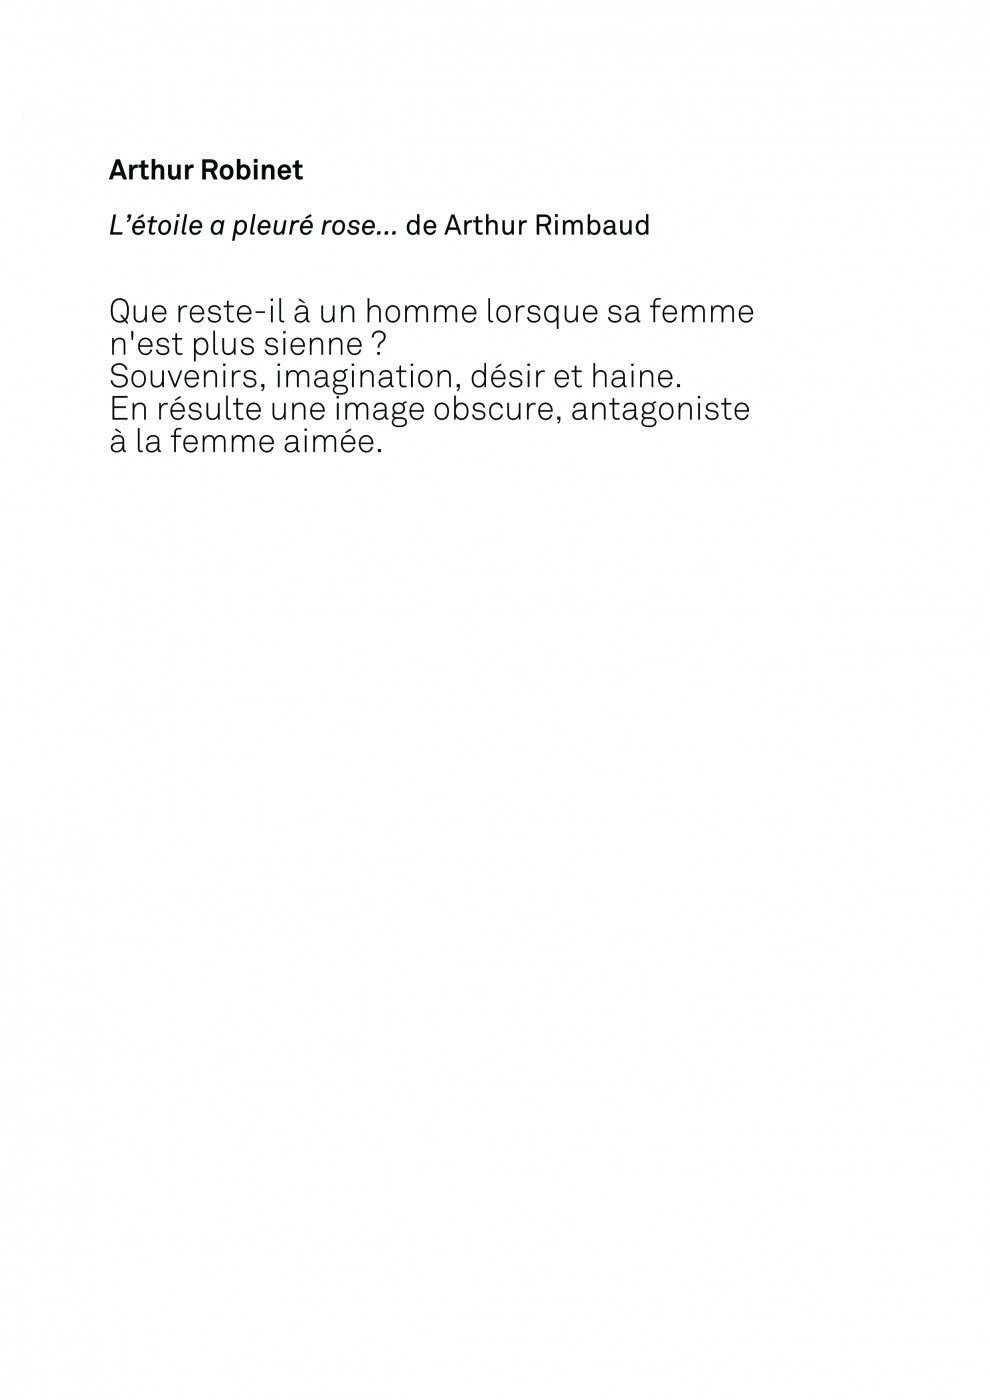 Rapport Texte/Image